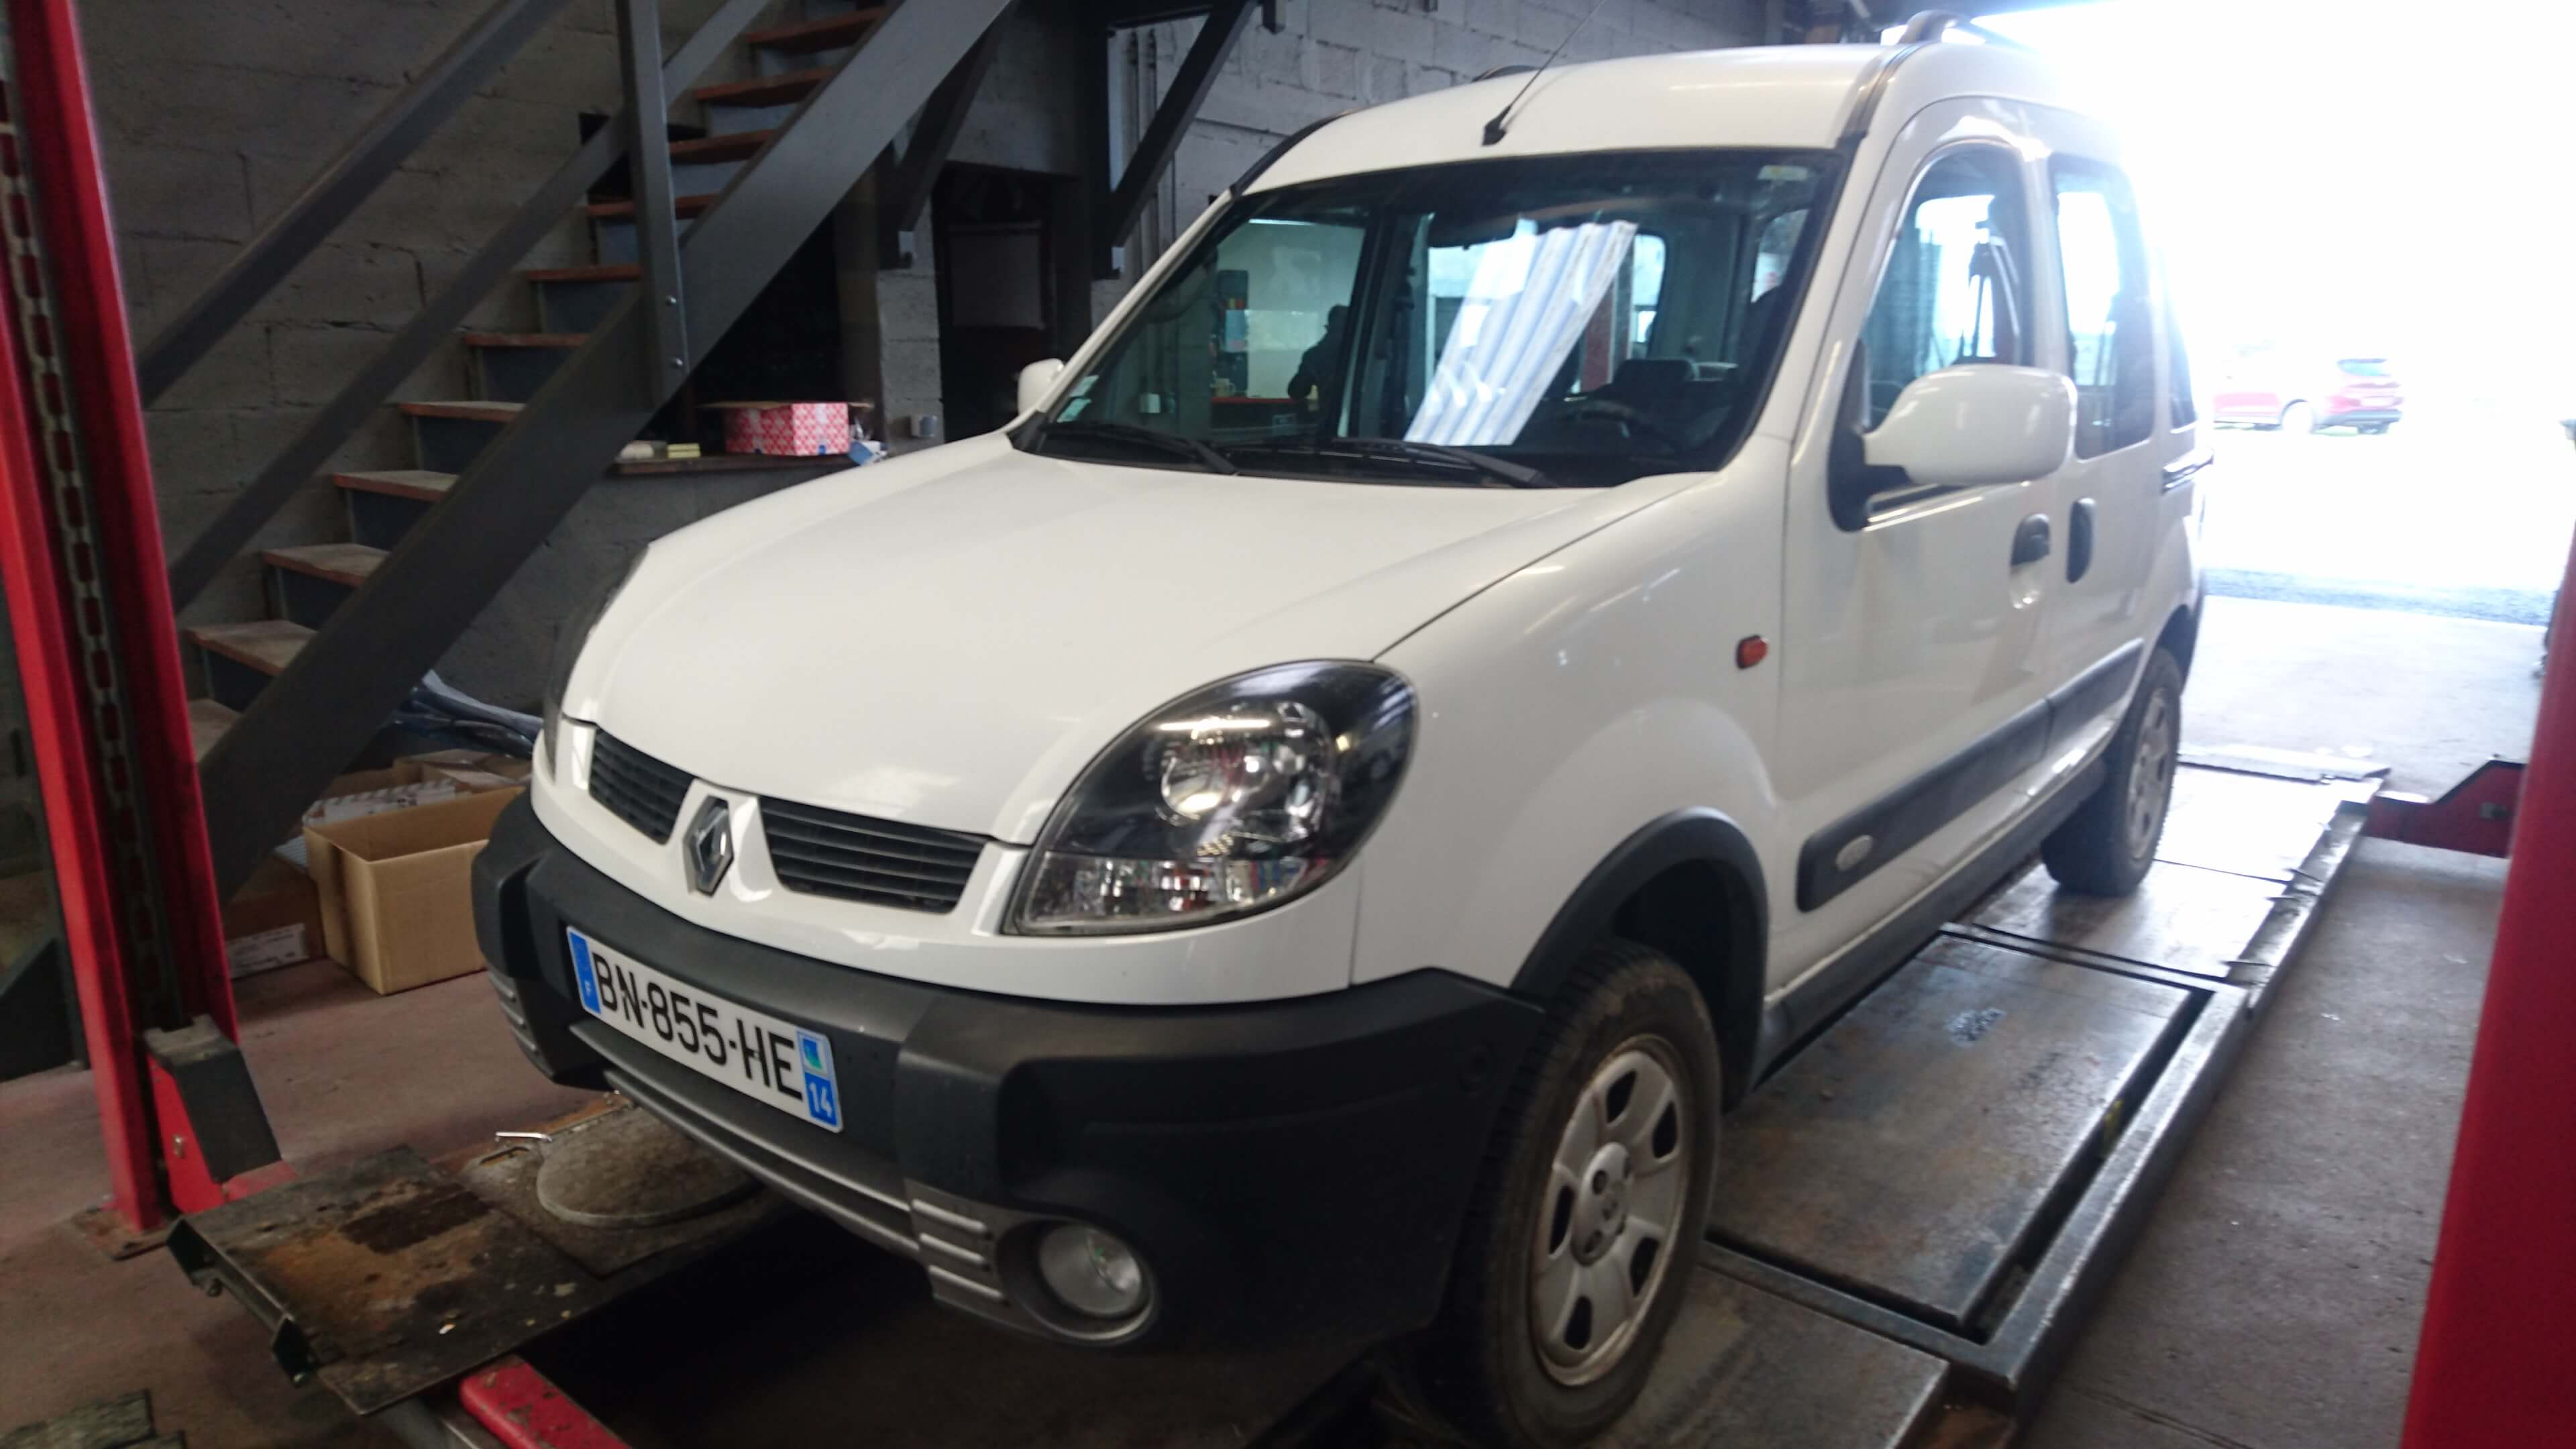 Utilitaire Occasion Brest Kangoo Occasion Particulier Occasion Petit Prix Renault